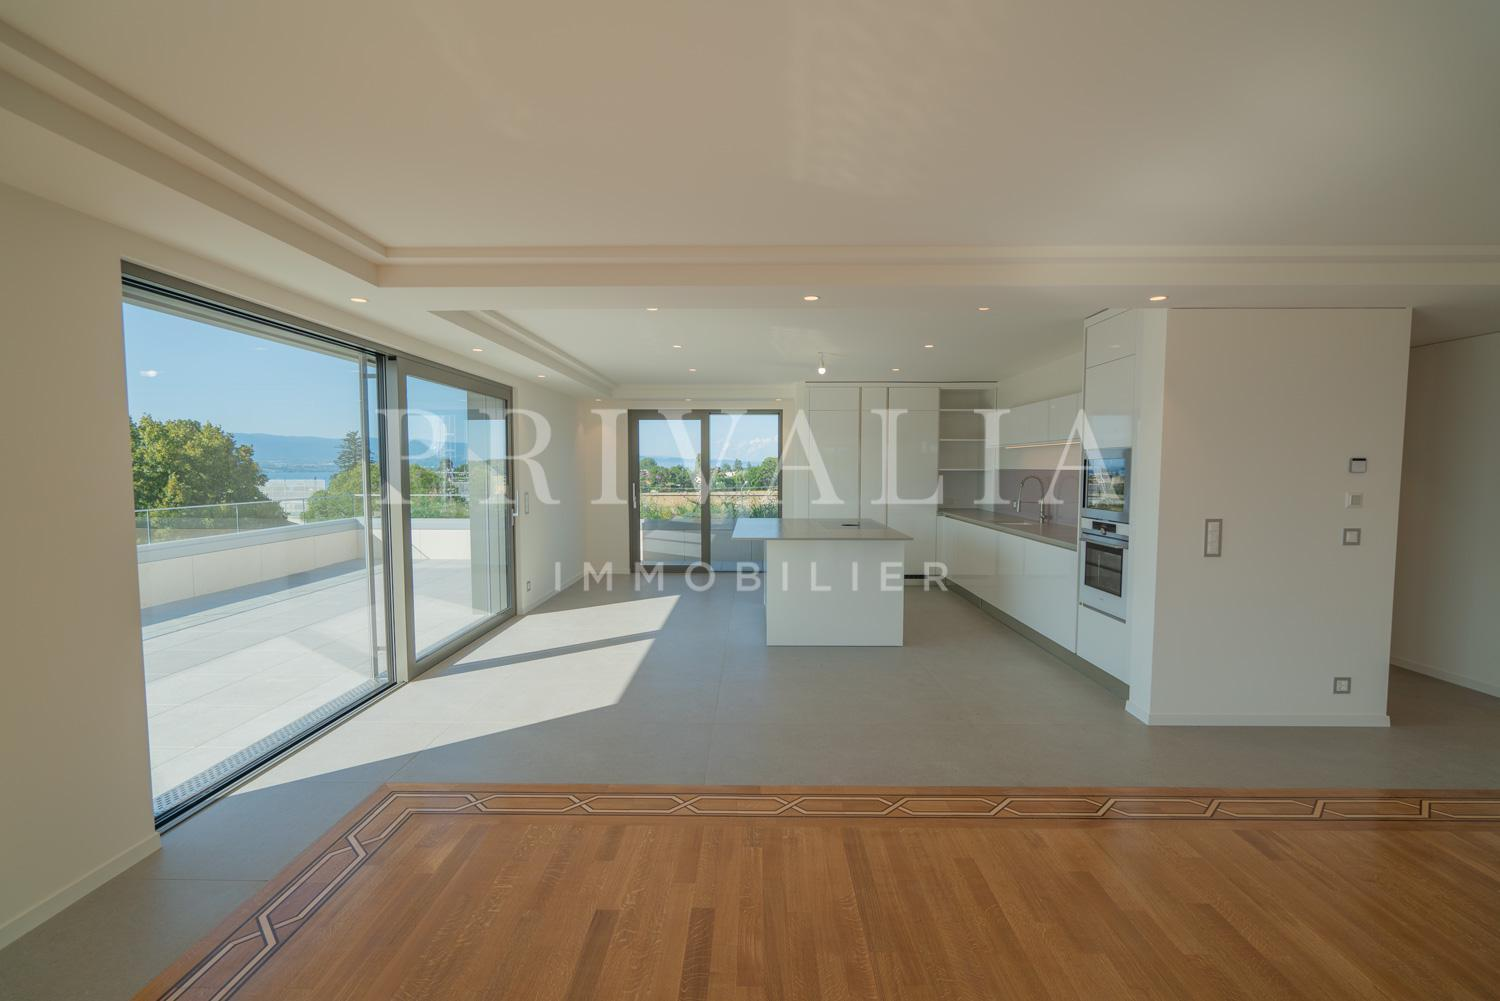 PrivaliaSumptuous 7.5 room penthouse with panoramic view of the lake and mountains